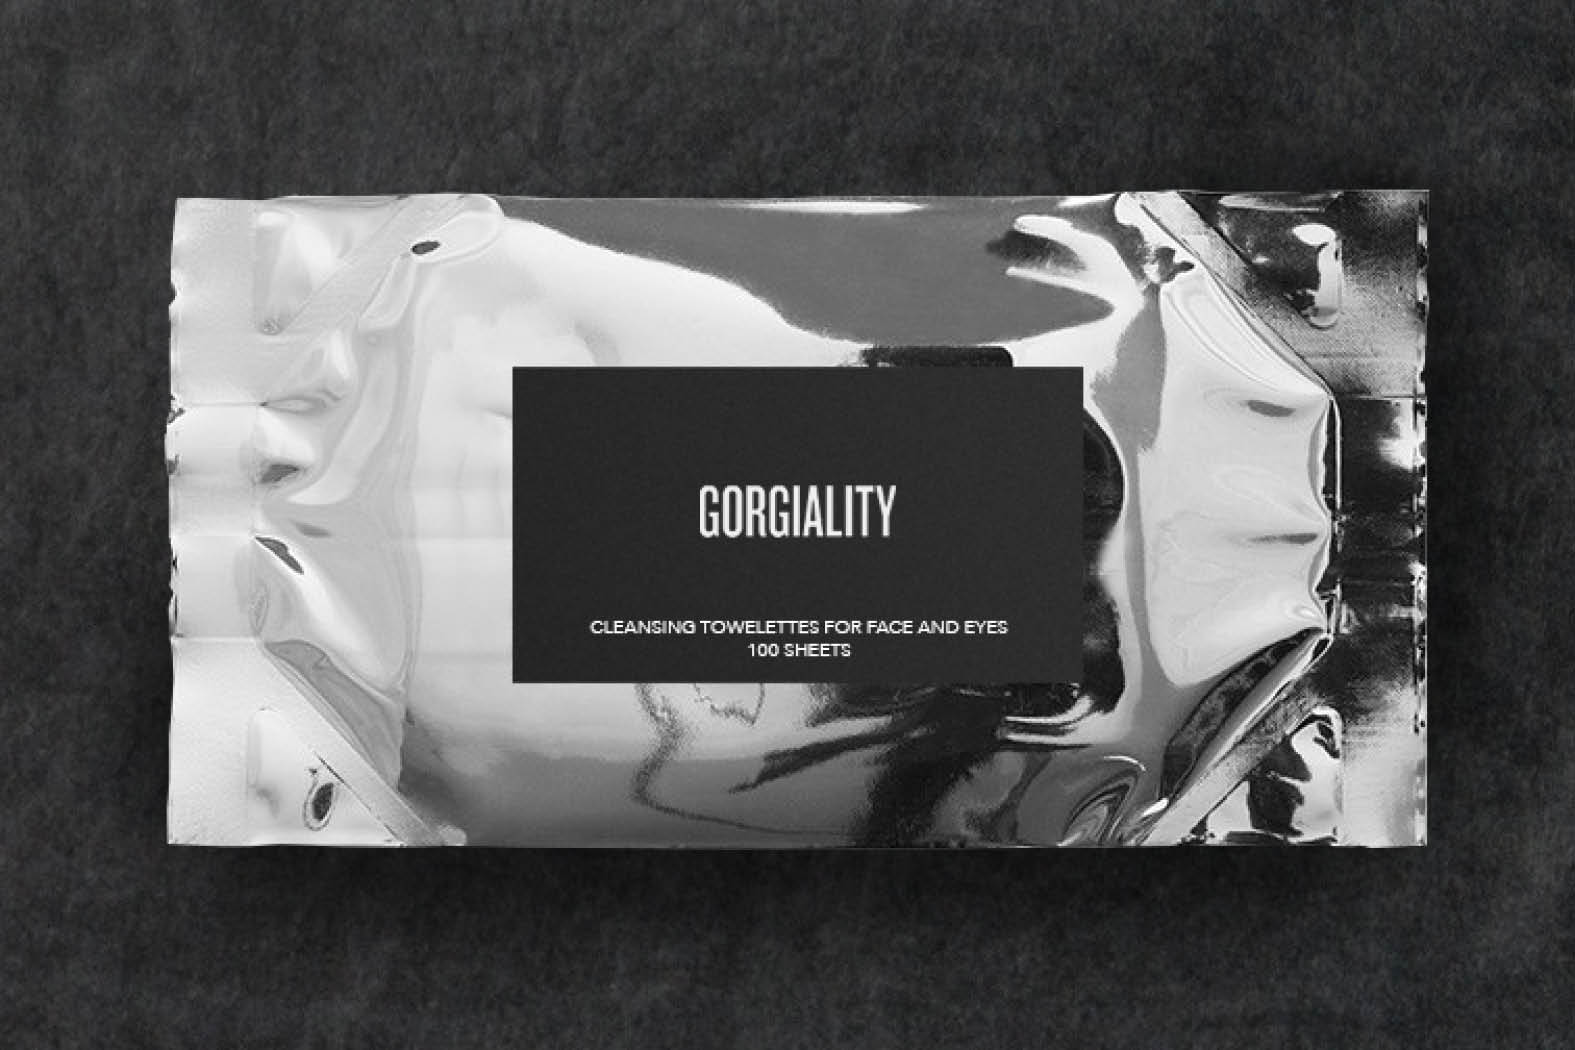 Form Gorgiality Packaging